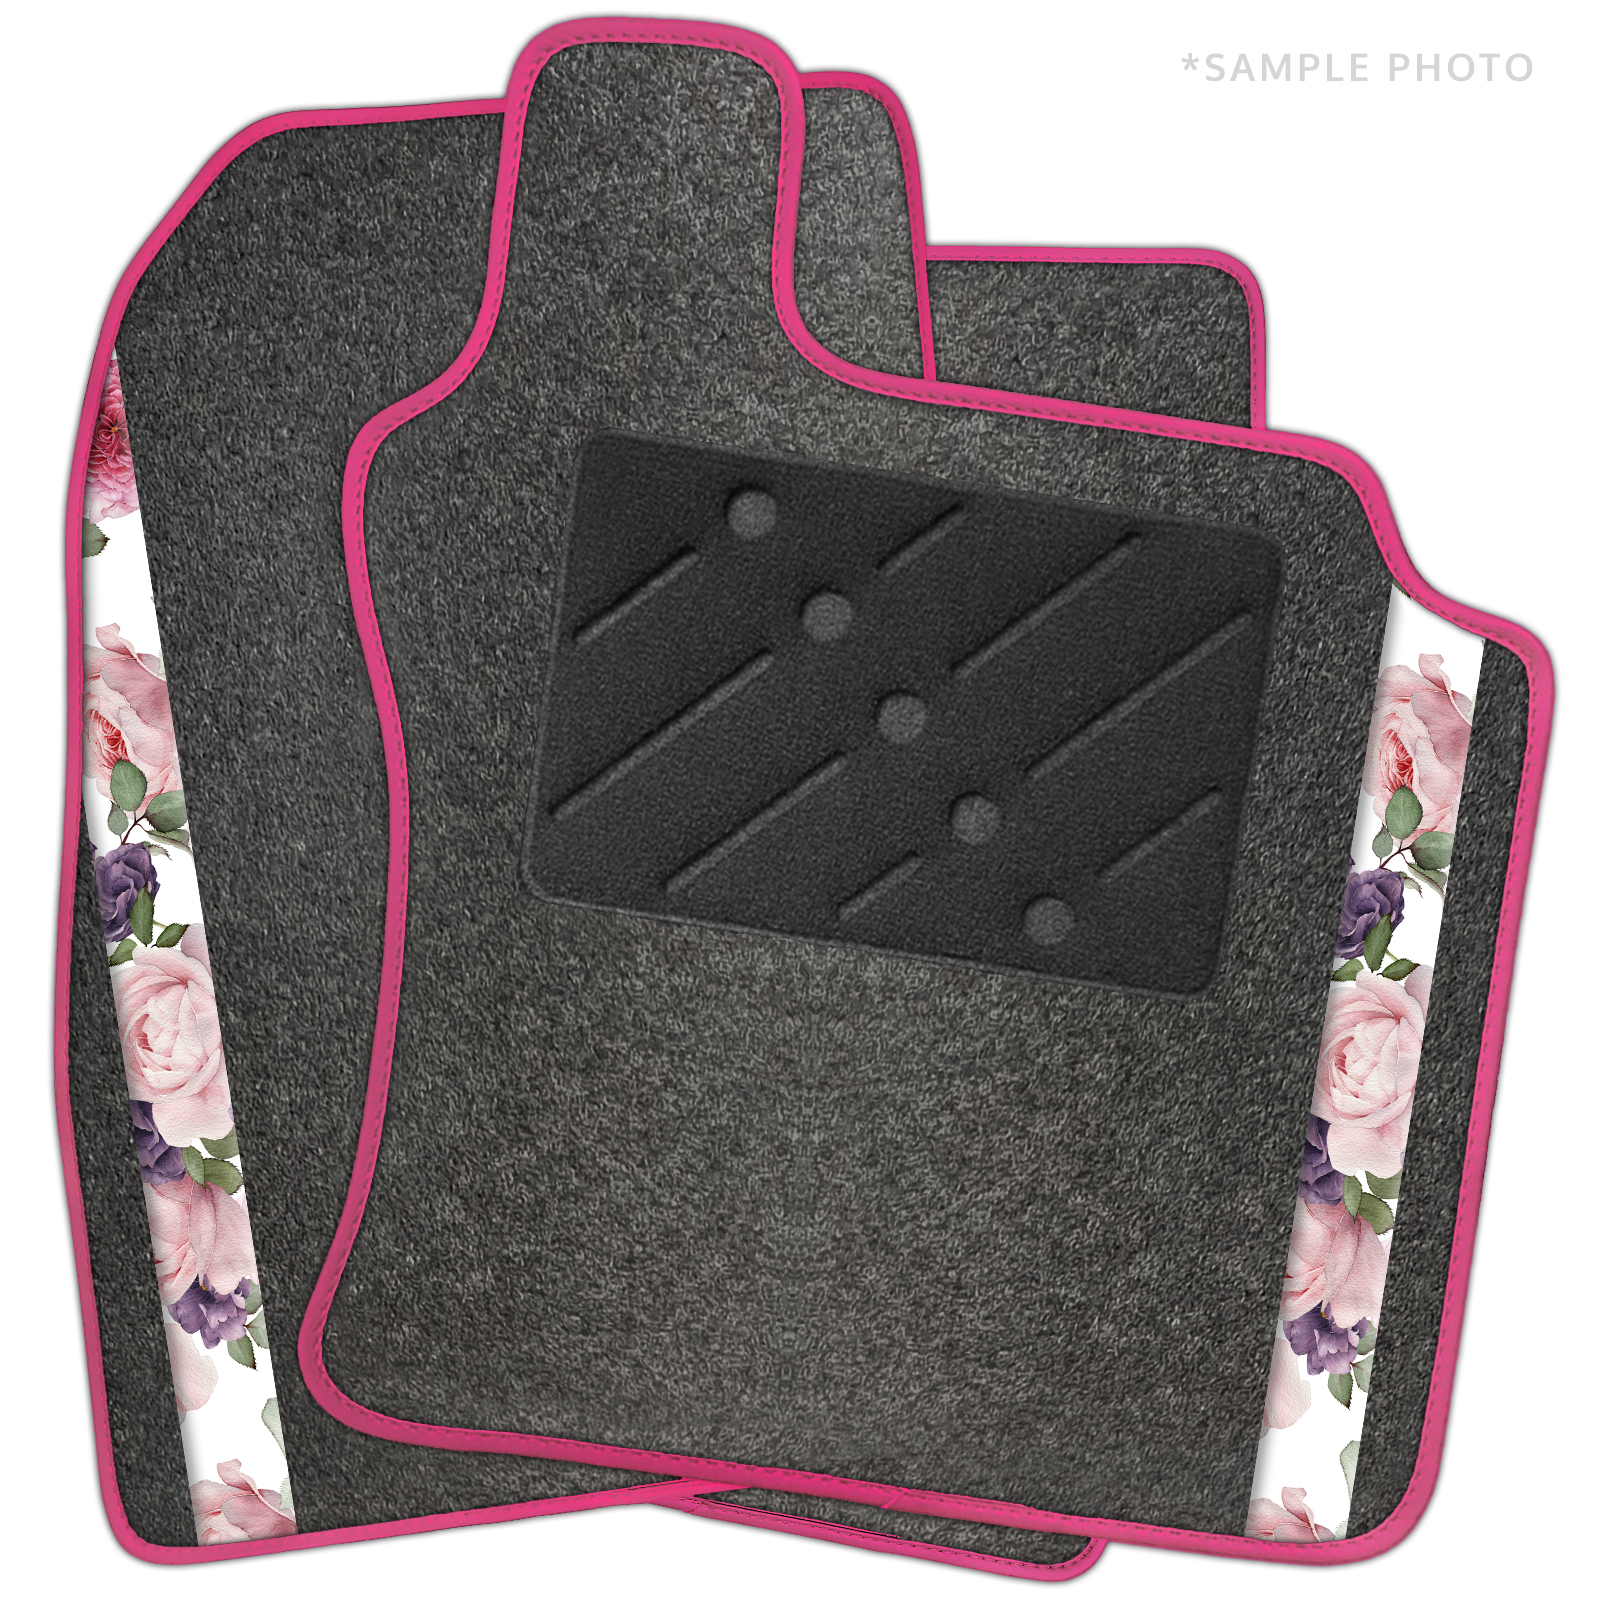 Vw T25 Caravelle Fully Tailored Black Carpet Car Mats